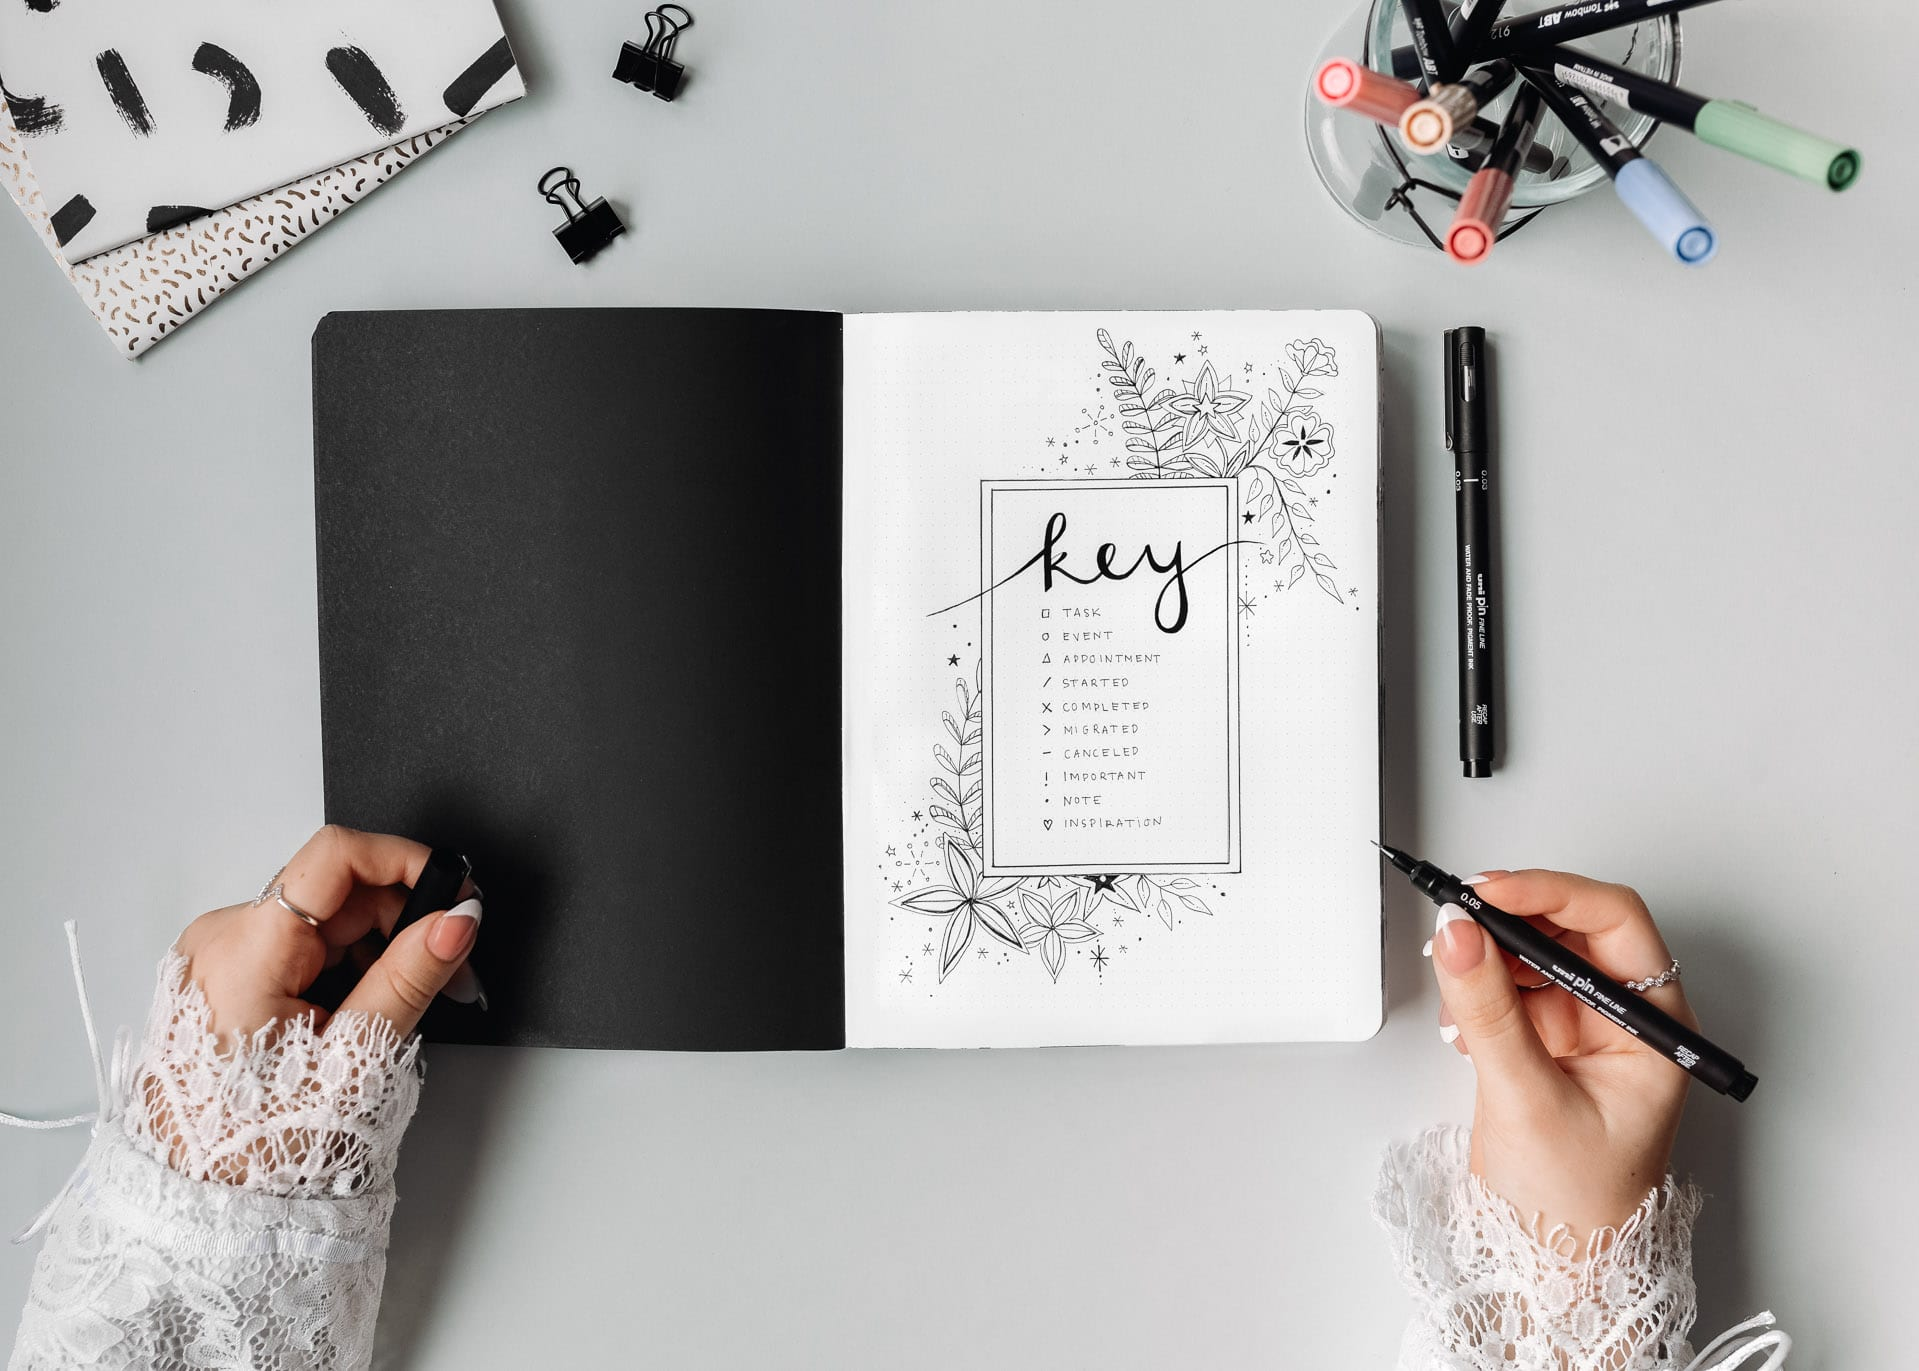 GUIDE: How to Start a Bullet Journal in 8 Simple Steps